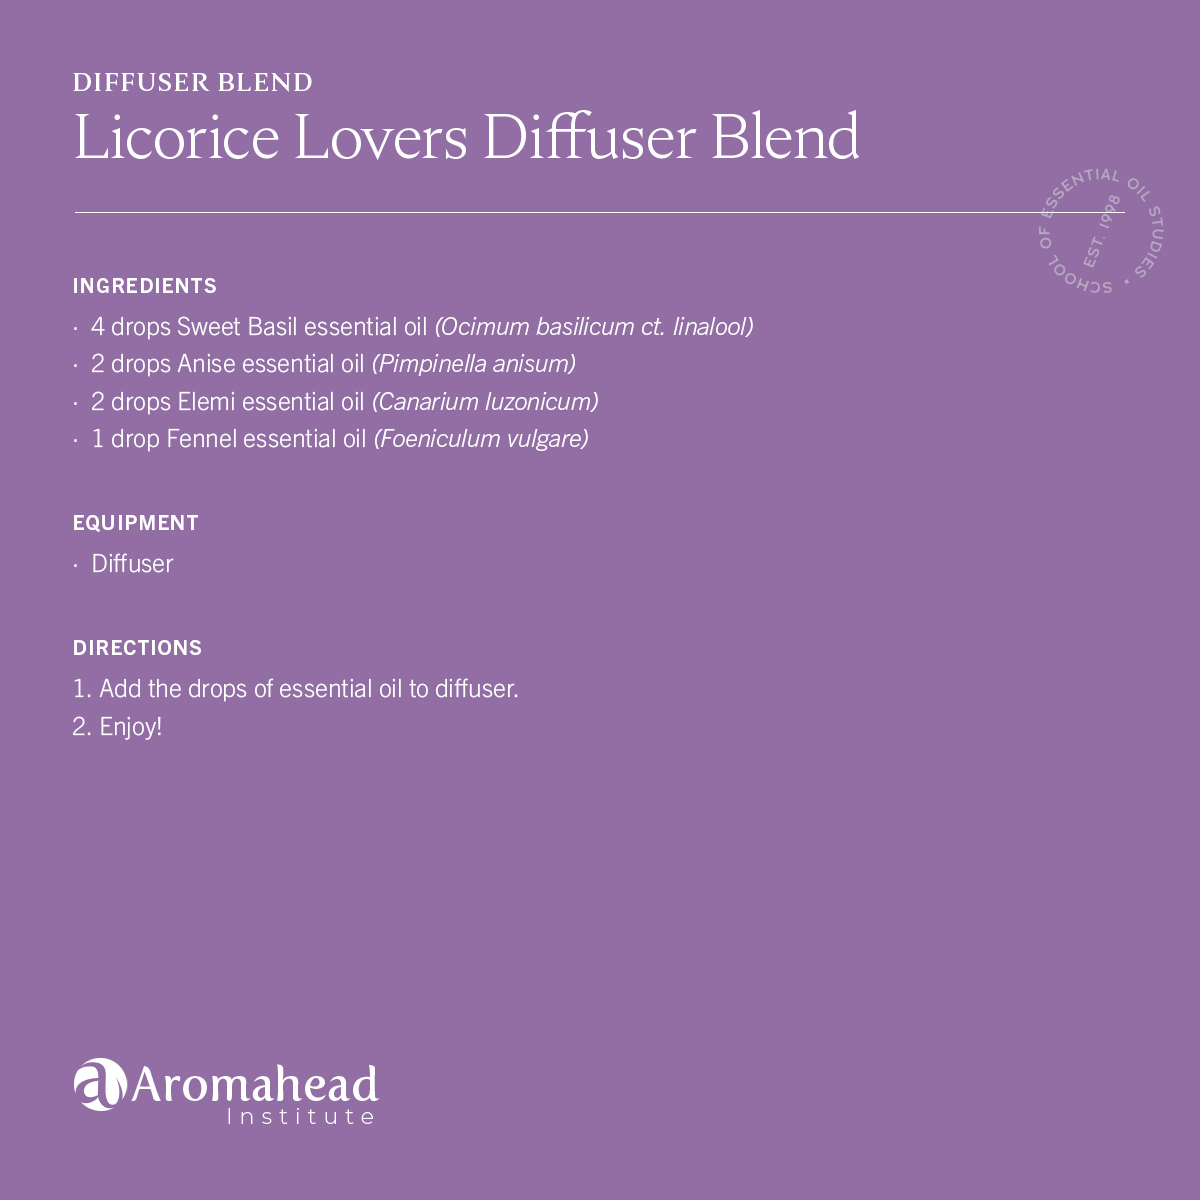 Licorice Lovers Diffuser Blend